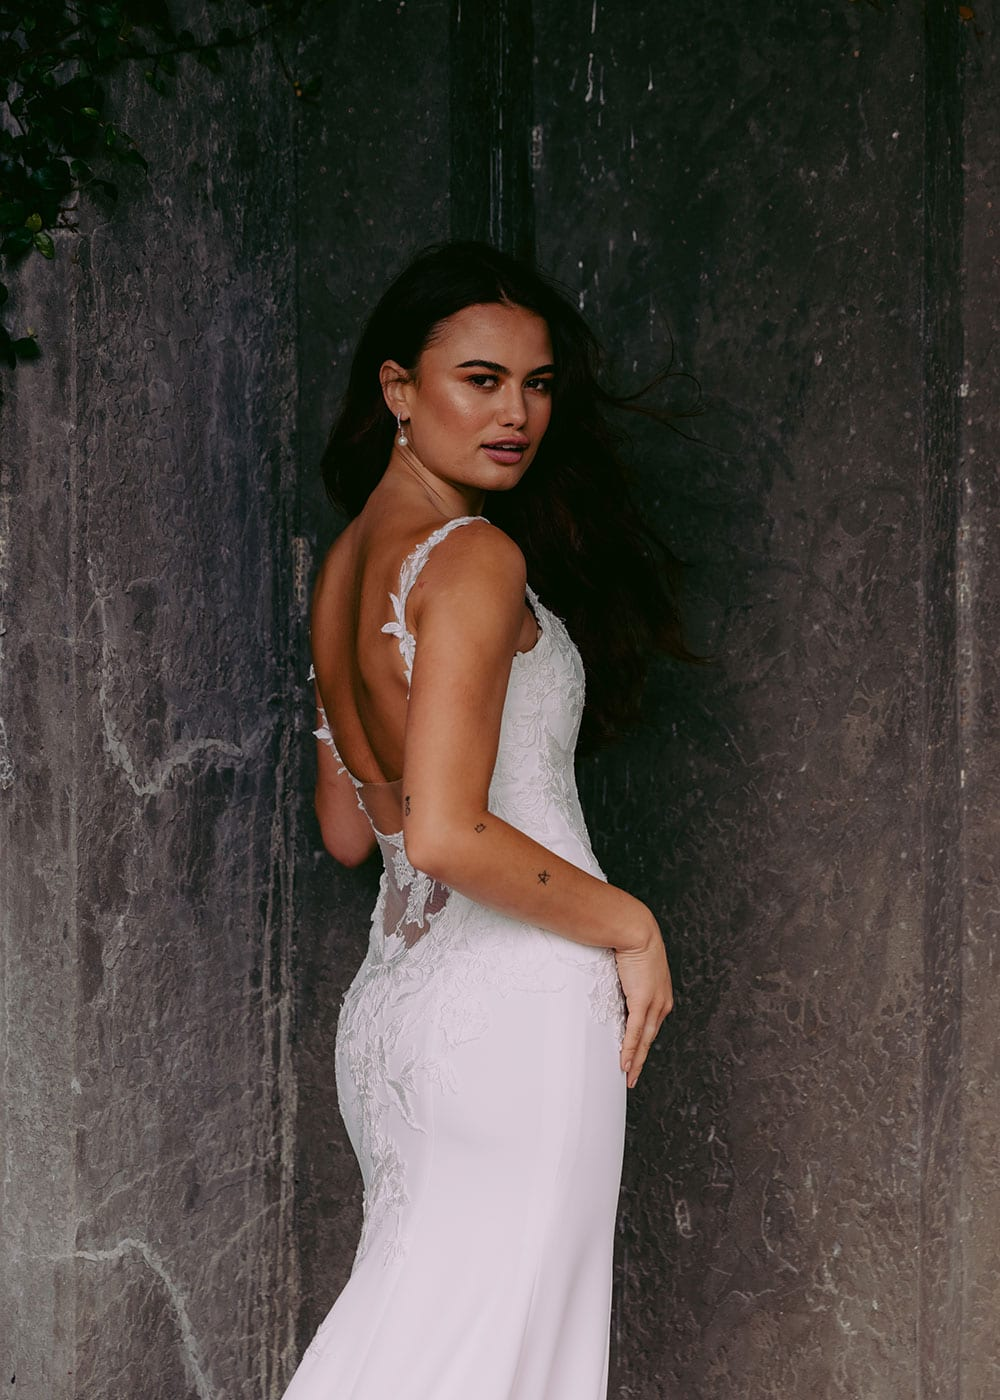 Ana Wedding gown from Vinka Design - This beautiful gown is graced by hand-appliqued delicate floral leaf lace, subtly worked into the front of the bodice and more prominently on the back. A fit-and-flare cut shapes the figure. Model wearing gown showing back lace detail and scultped fit..